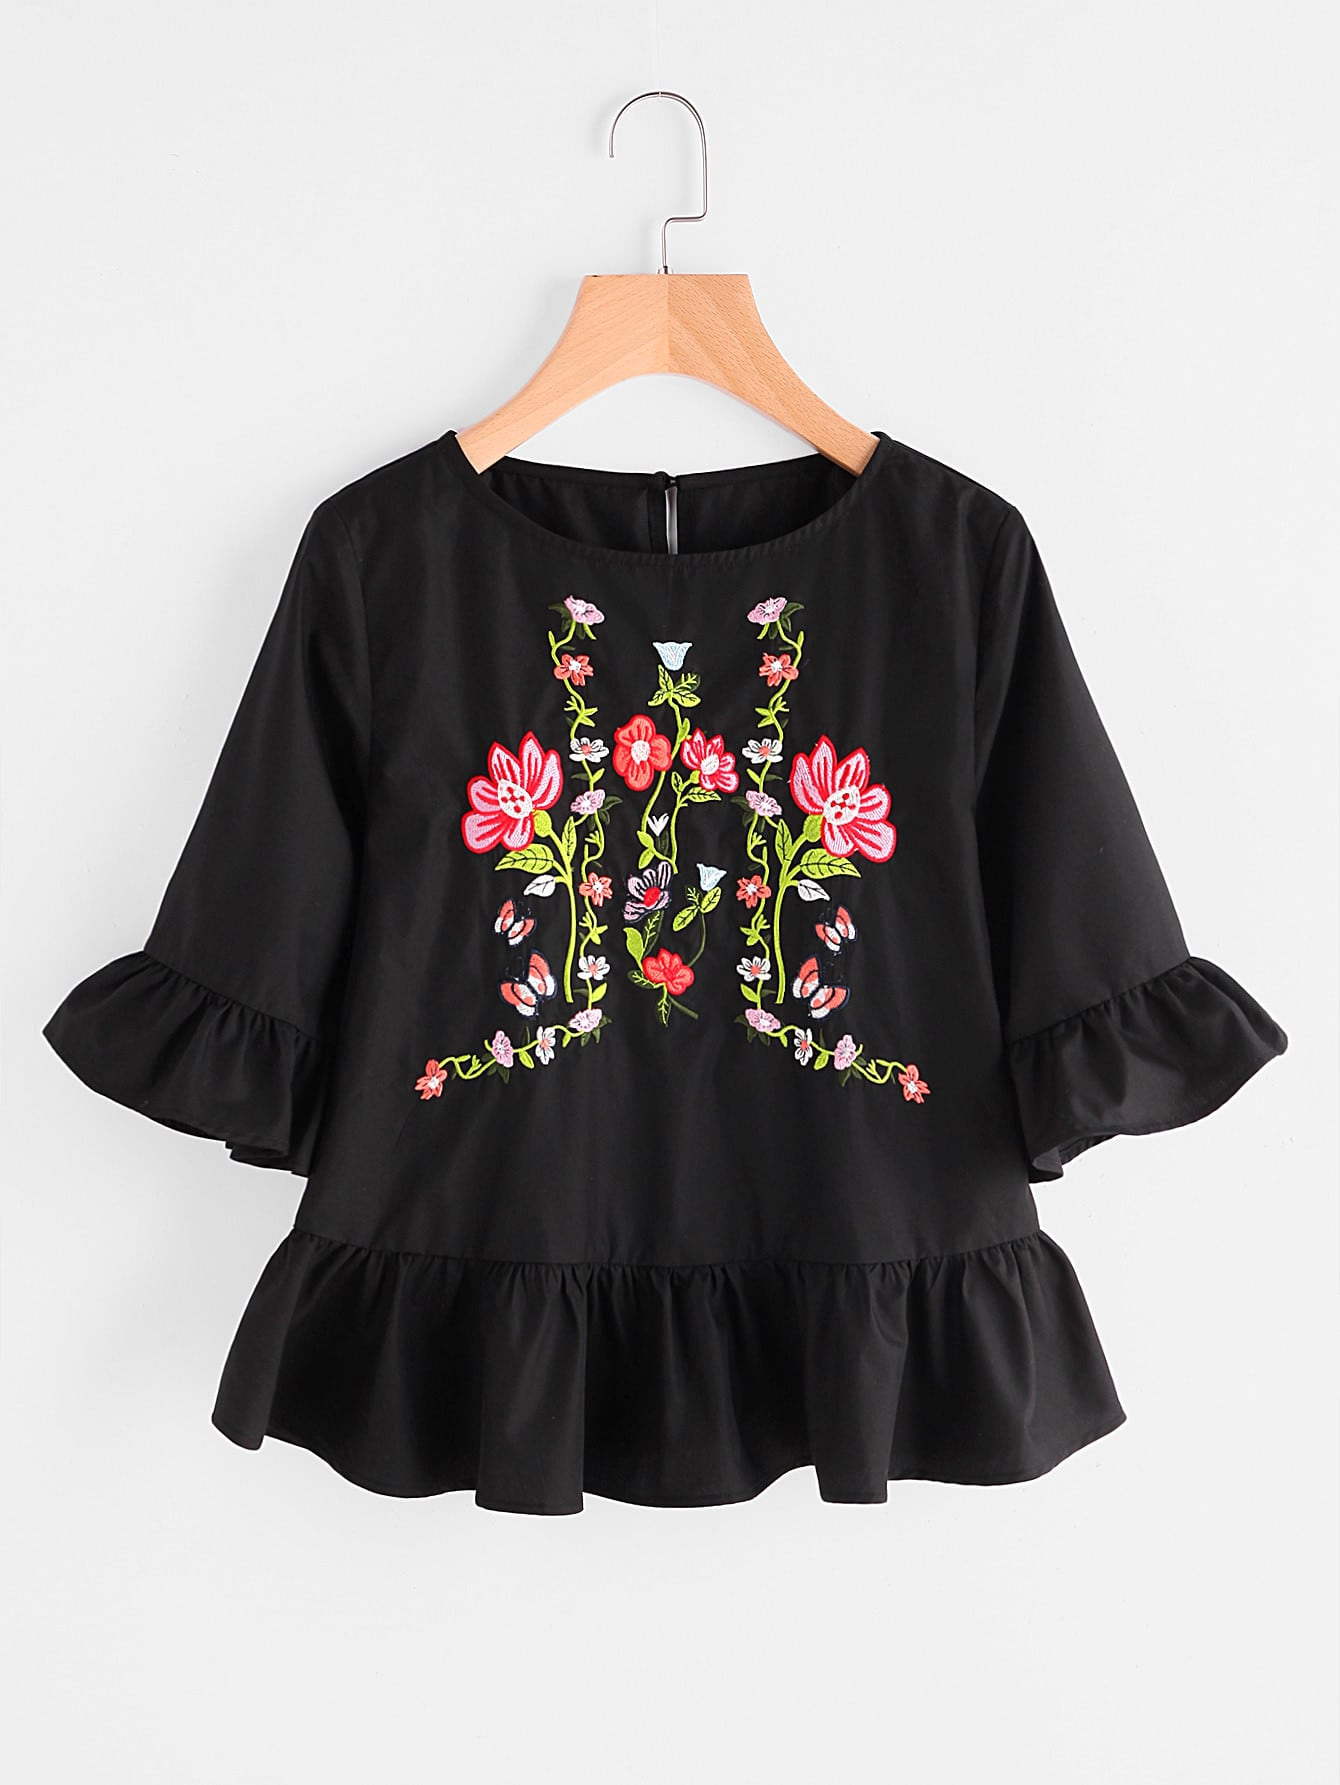 Buttoned Keyhole Back Flower Embroidered Ruffle Top buttoned keyhole back 2 in 1 embroidered mesh top